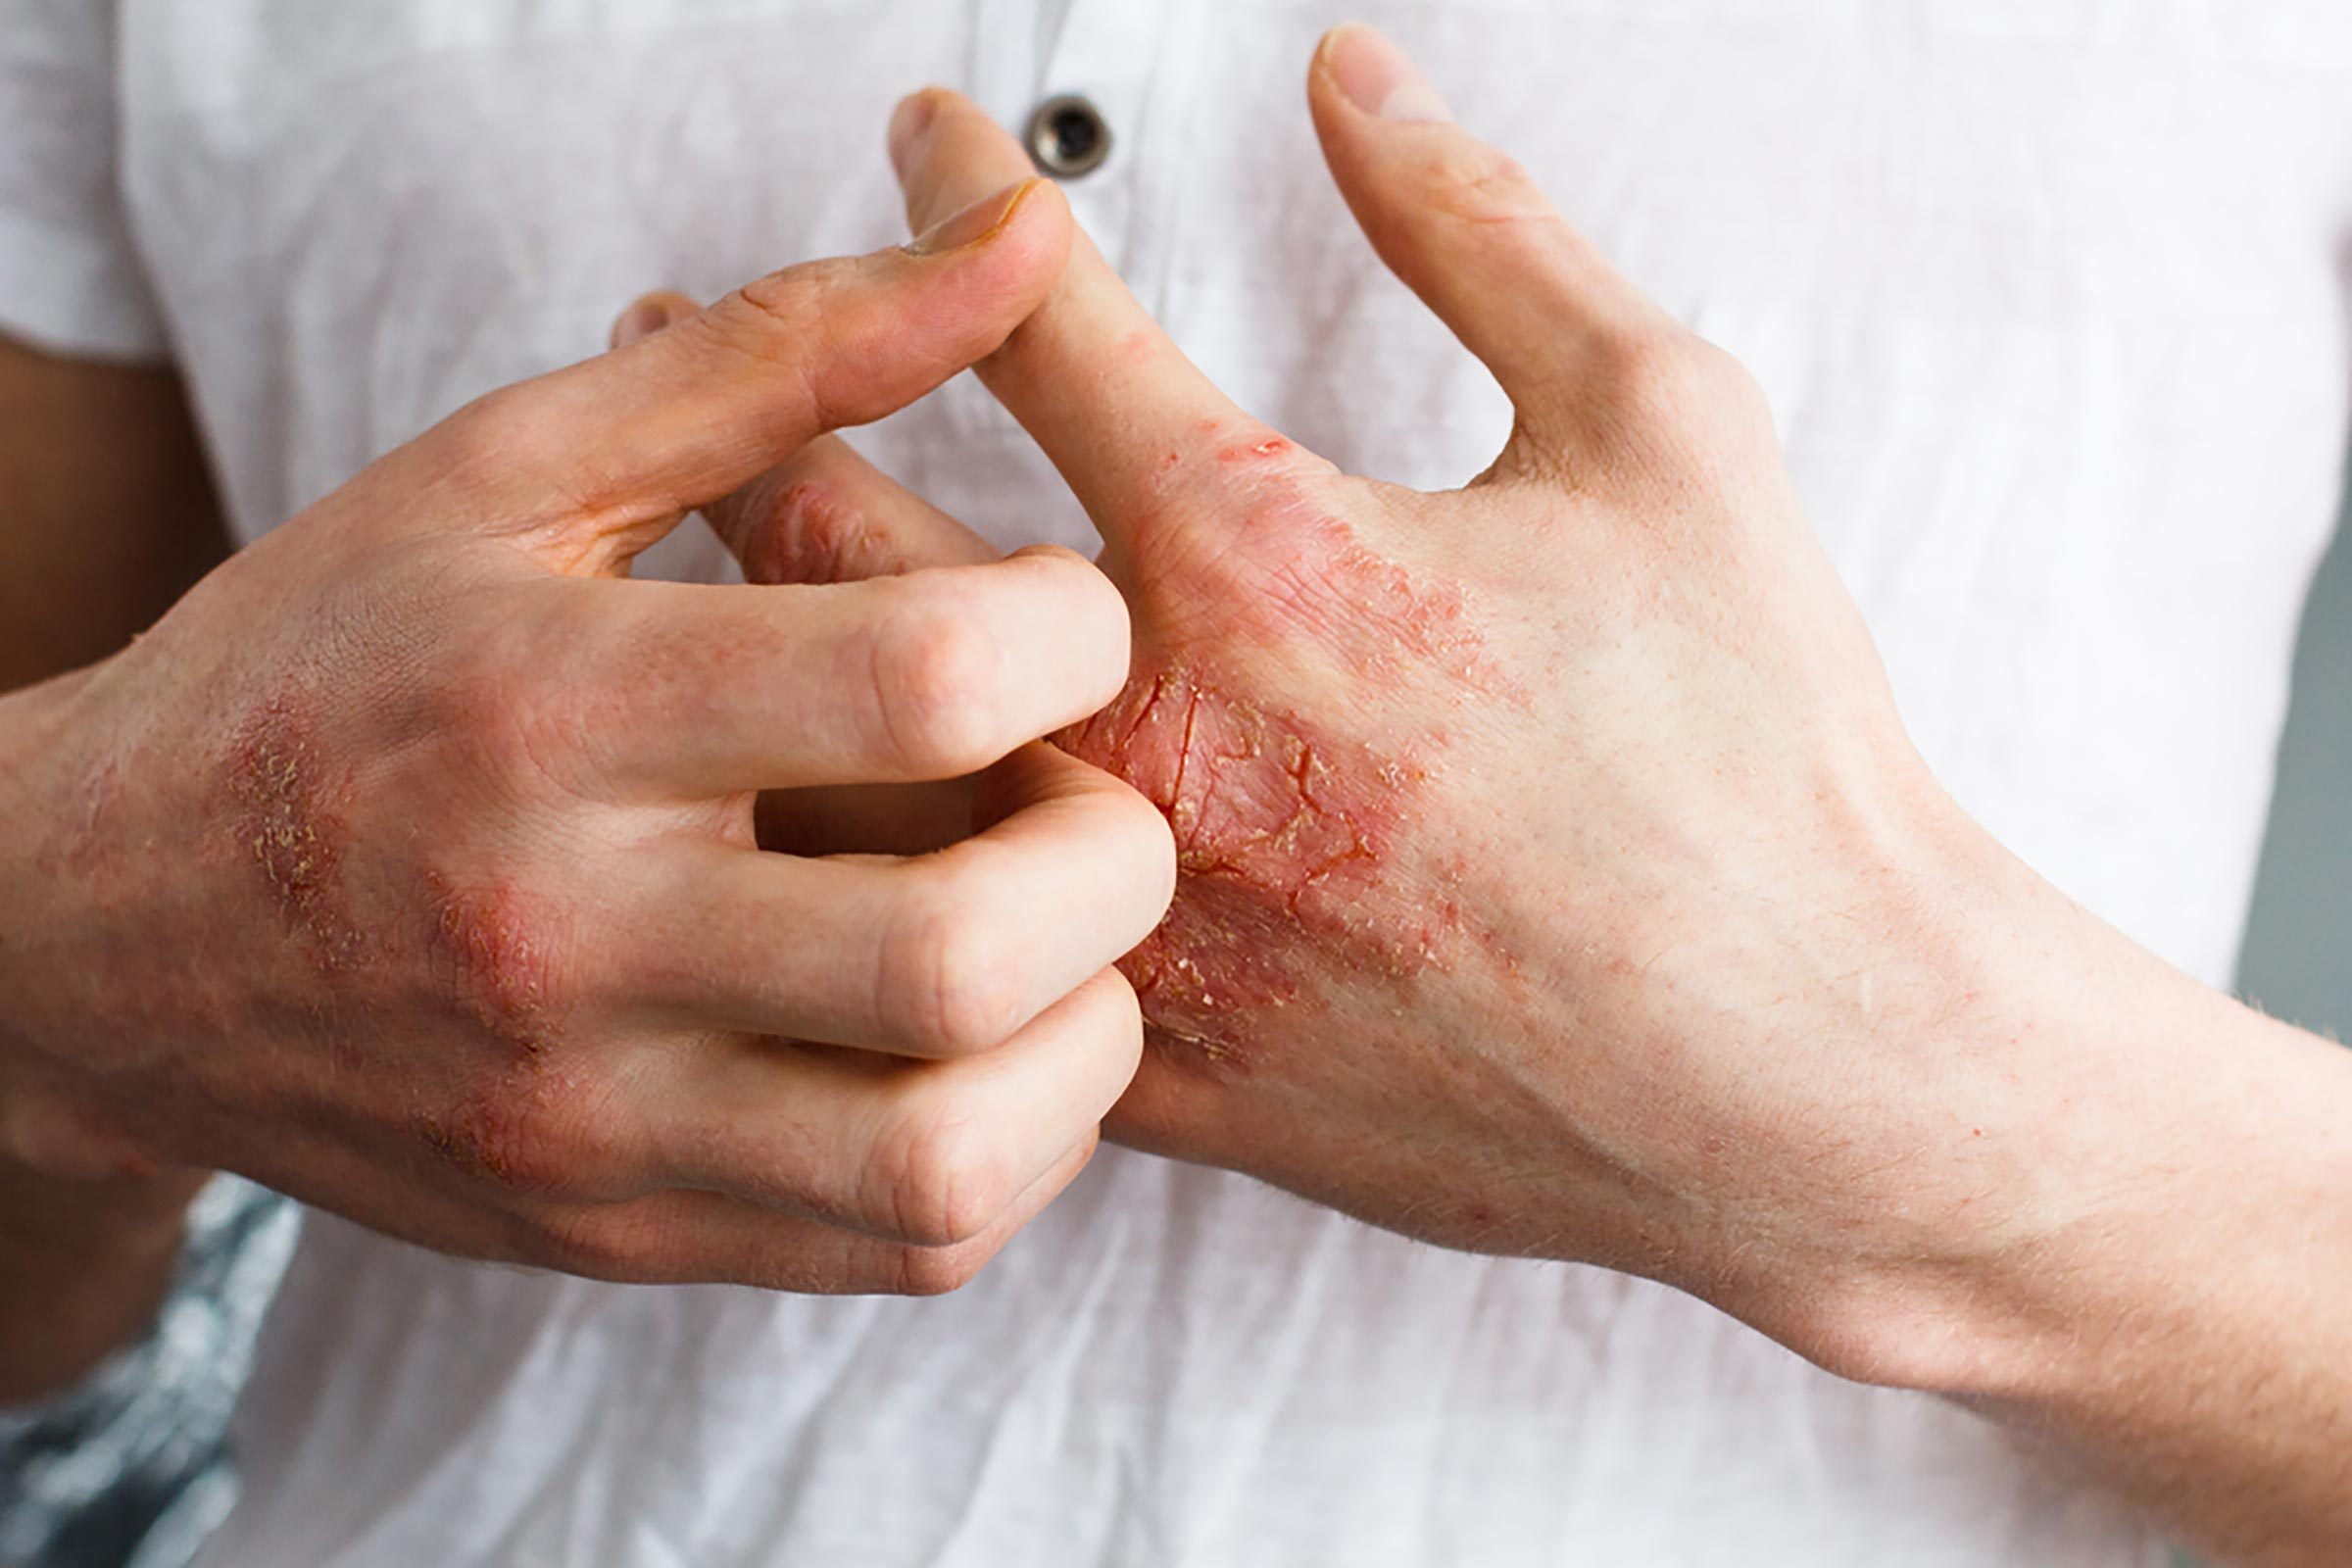 Red, itchy eczema on someone's hands.